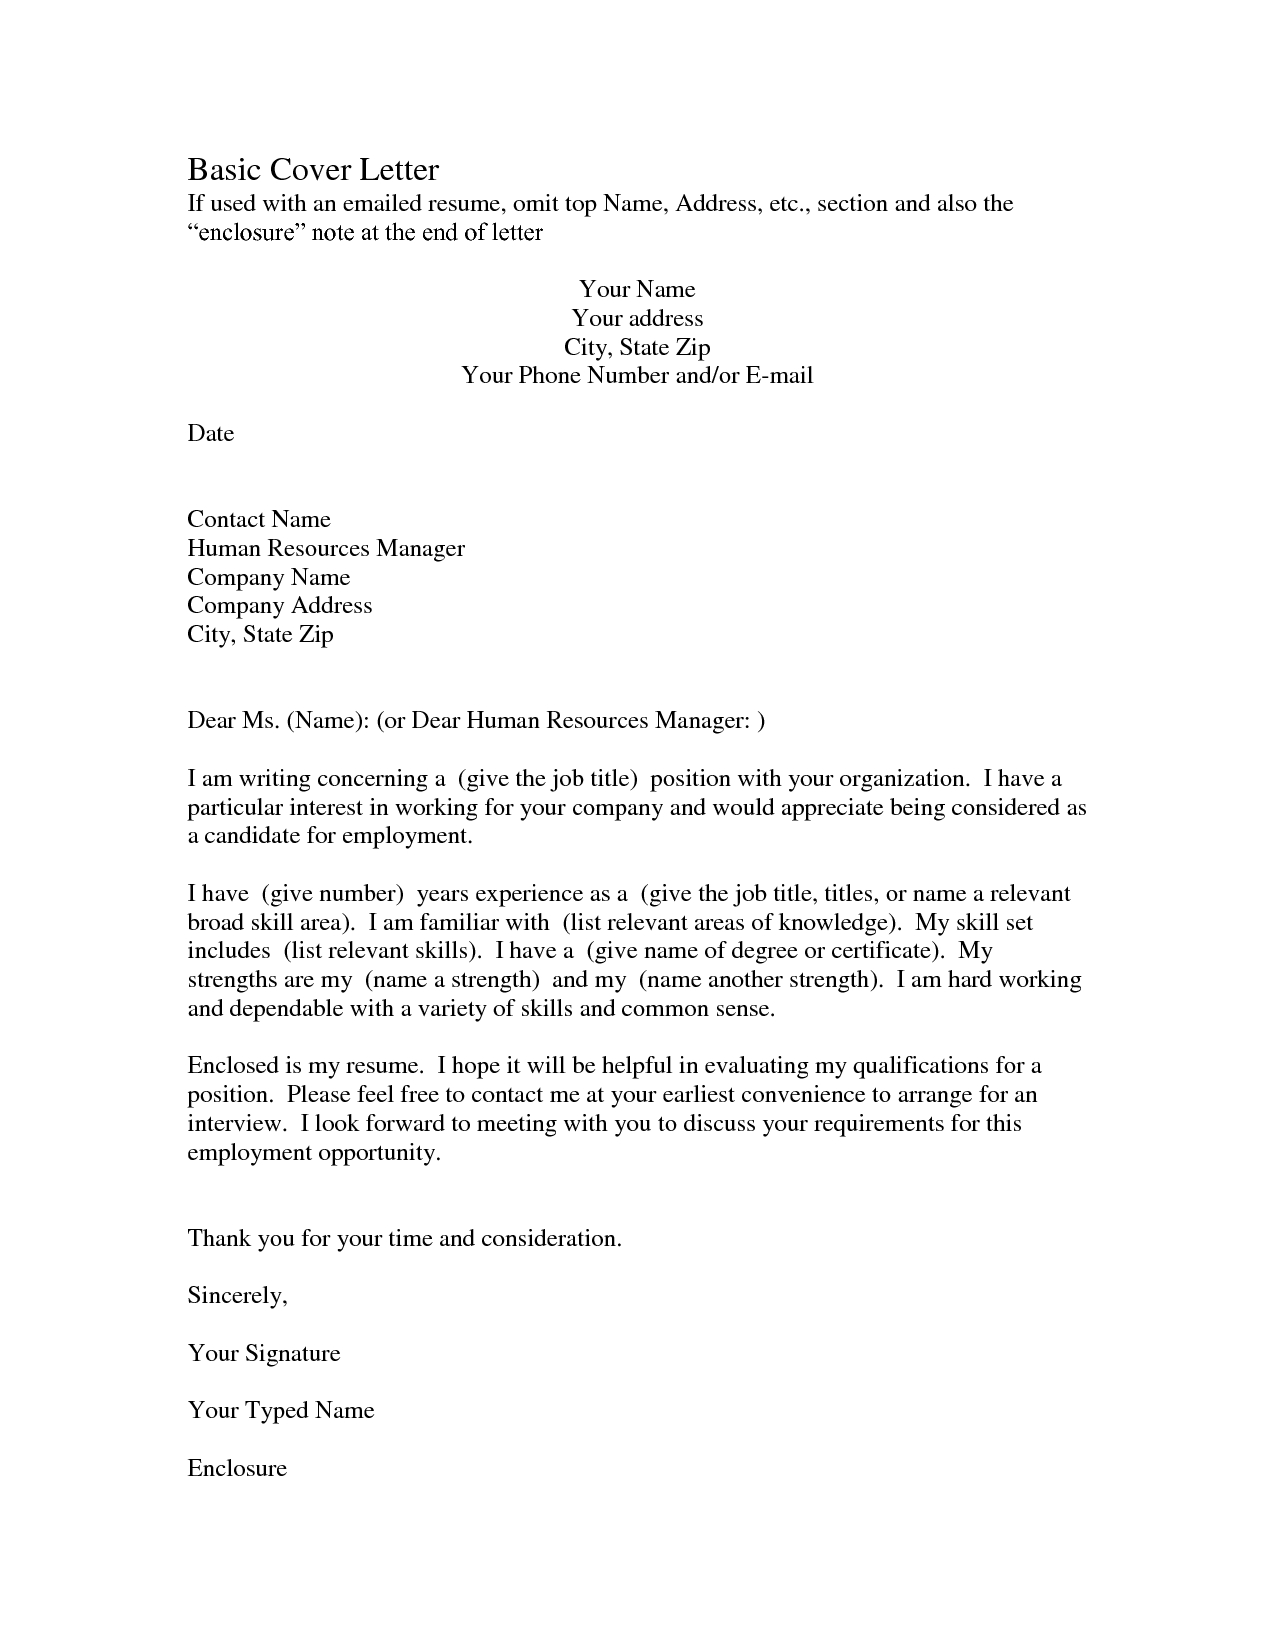 Advertising Agency Of Record Letter Template - This Cover Letter Sample Shows How A Resumes for Teachers Can Help